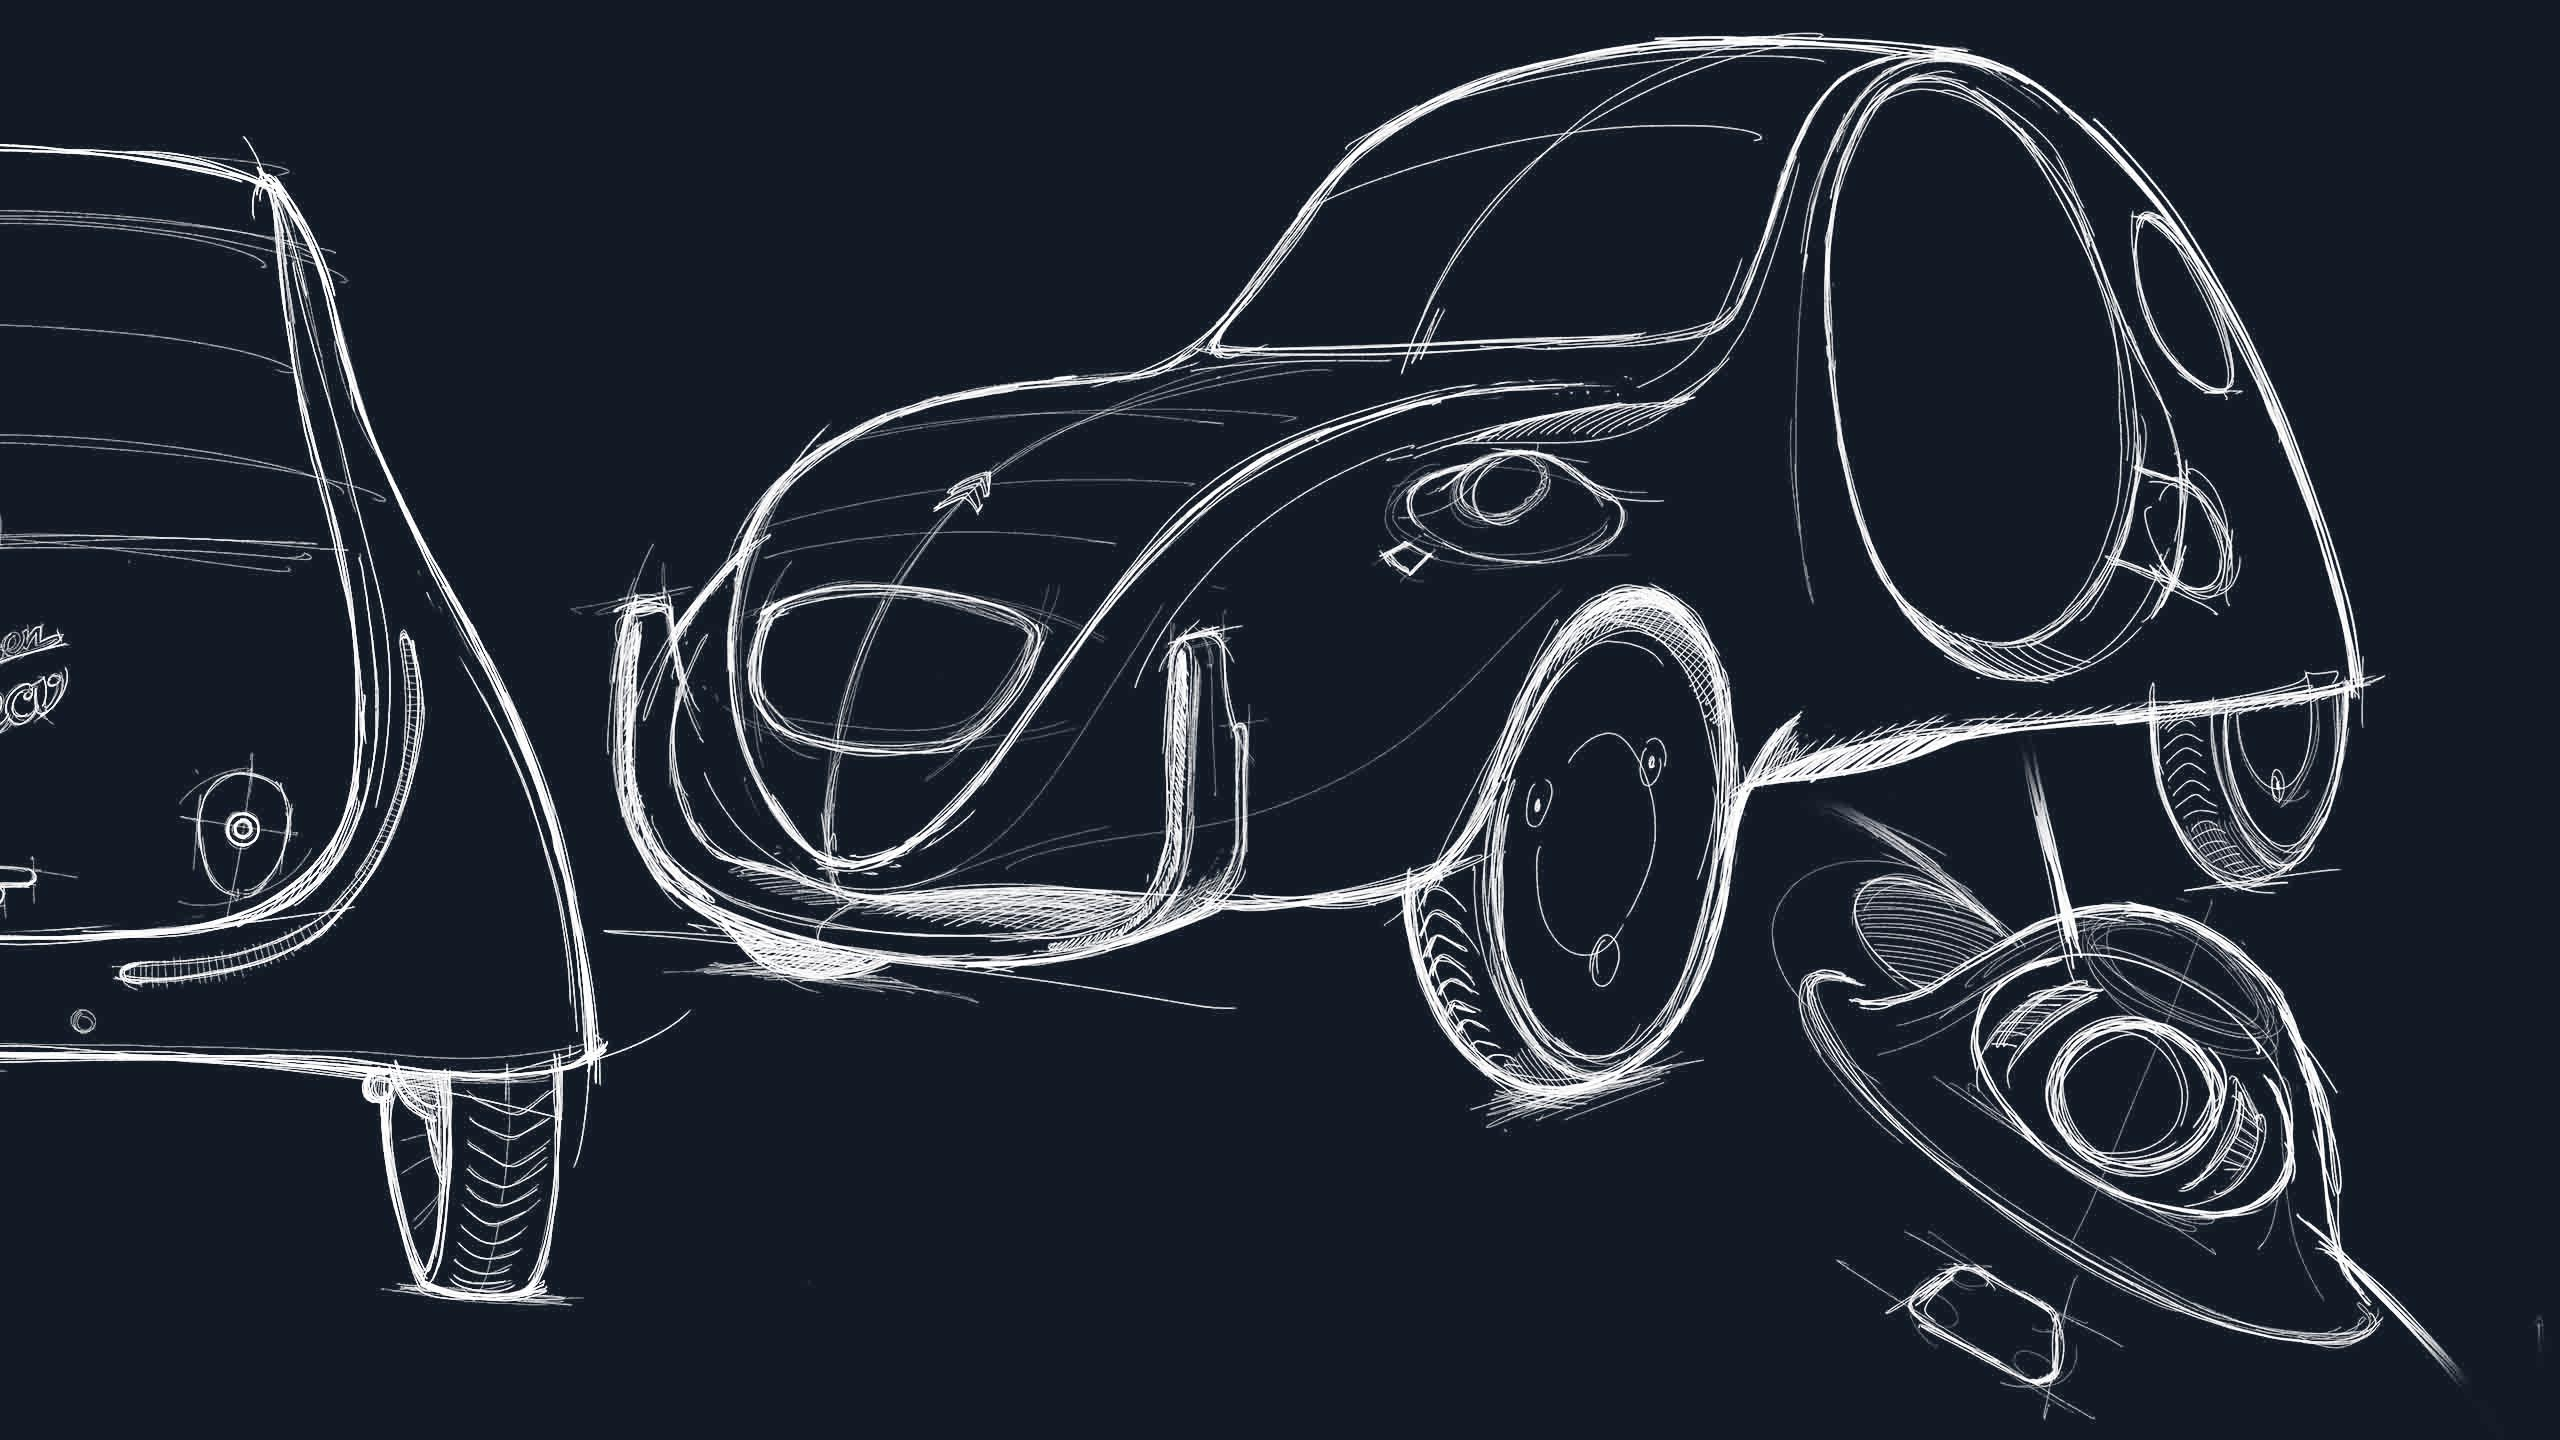 Citroen eCV sketch large